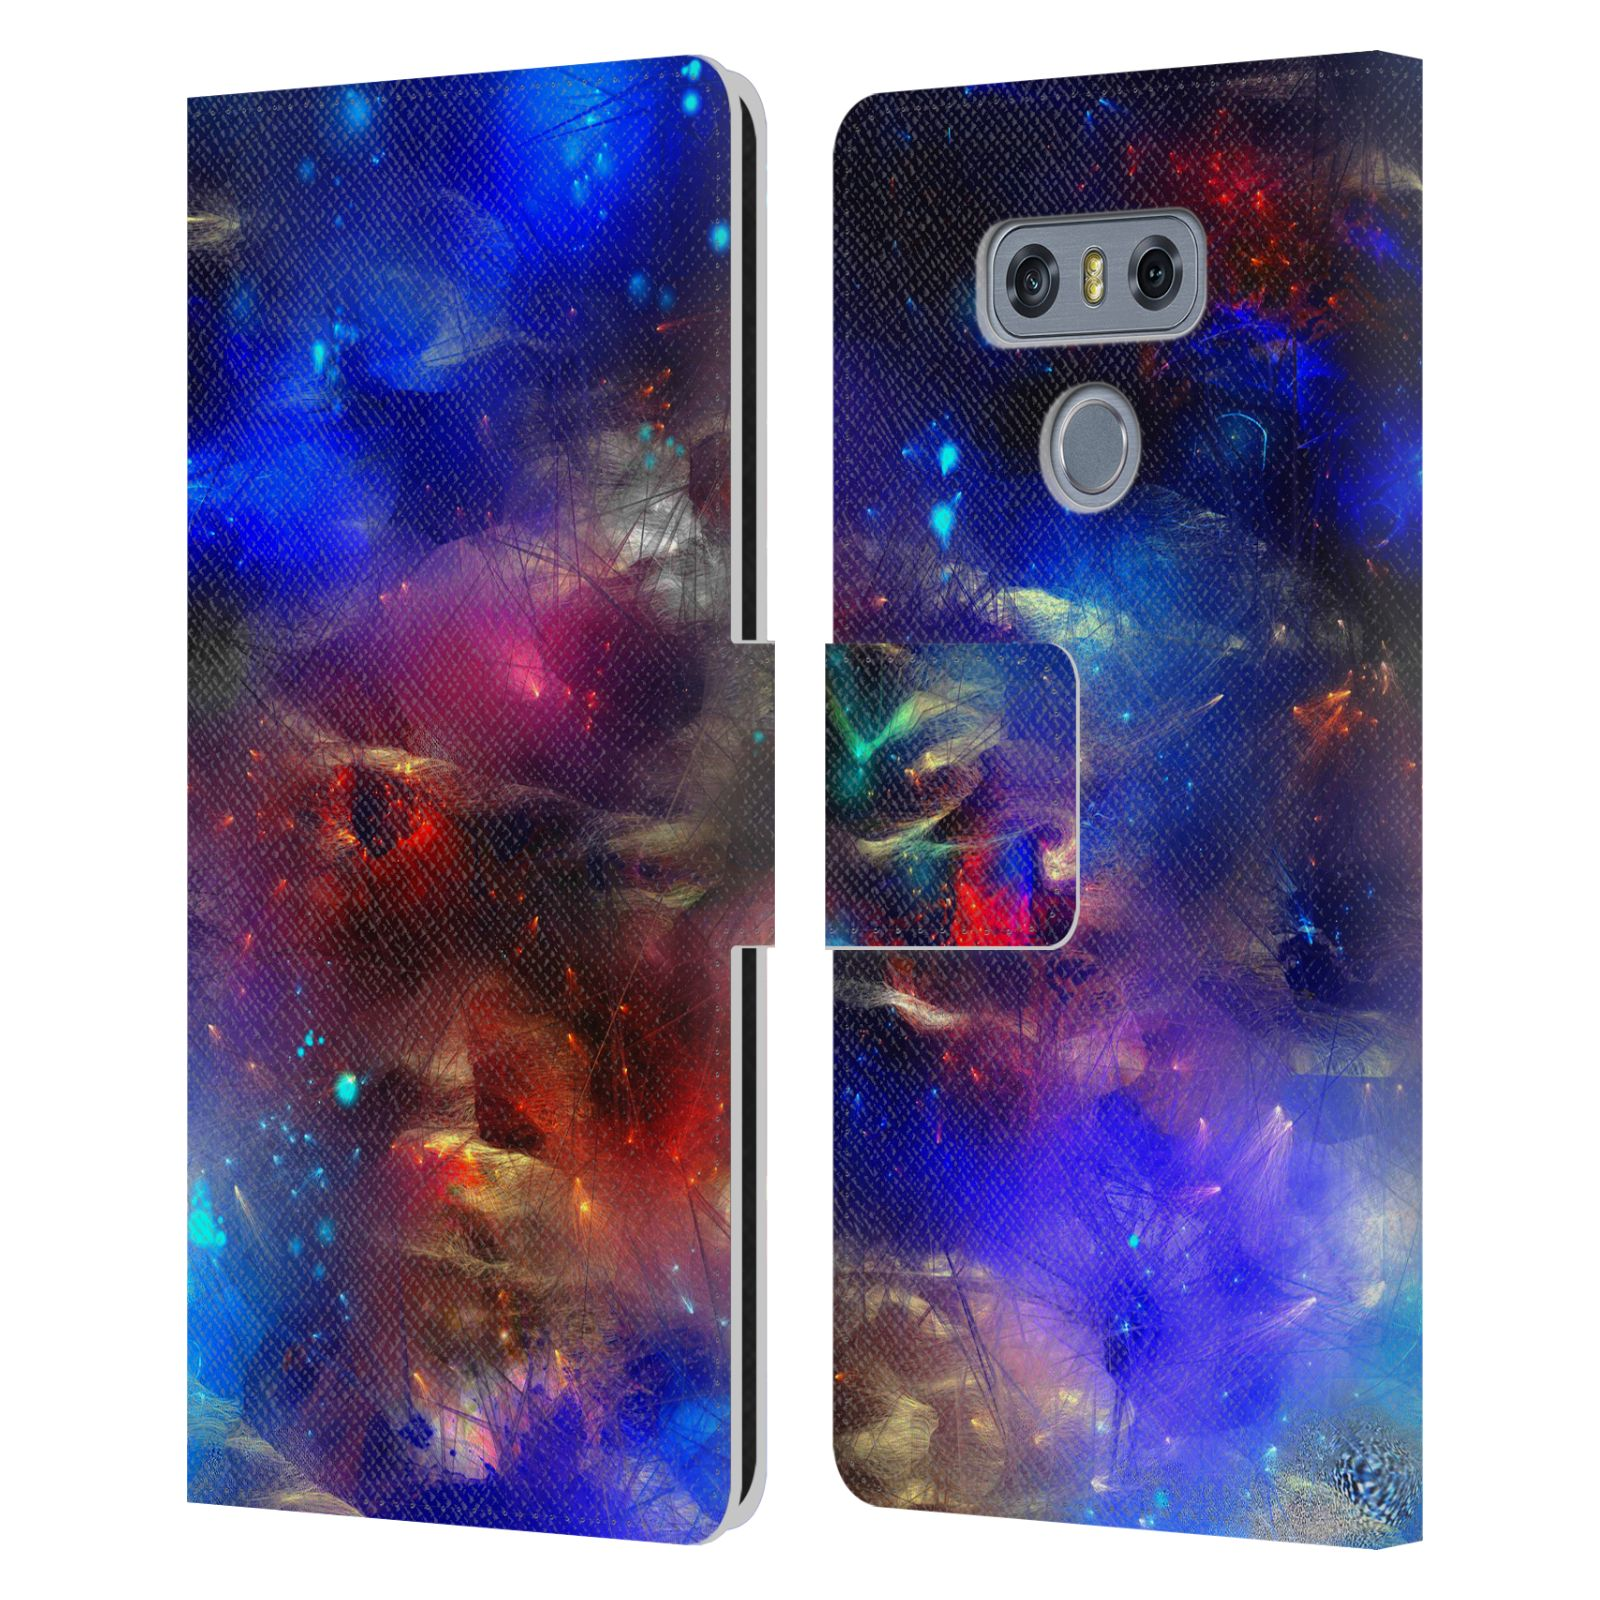 OFFICIAL-RUNA-VIVID-LEATHER-BOOK-WALLET-CASE-COVER-FOR-LG-PHONES-1